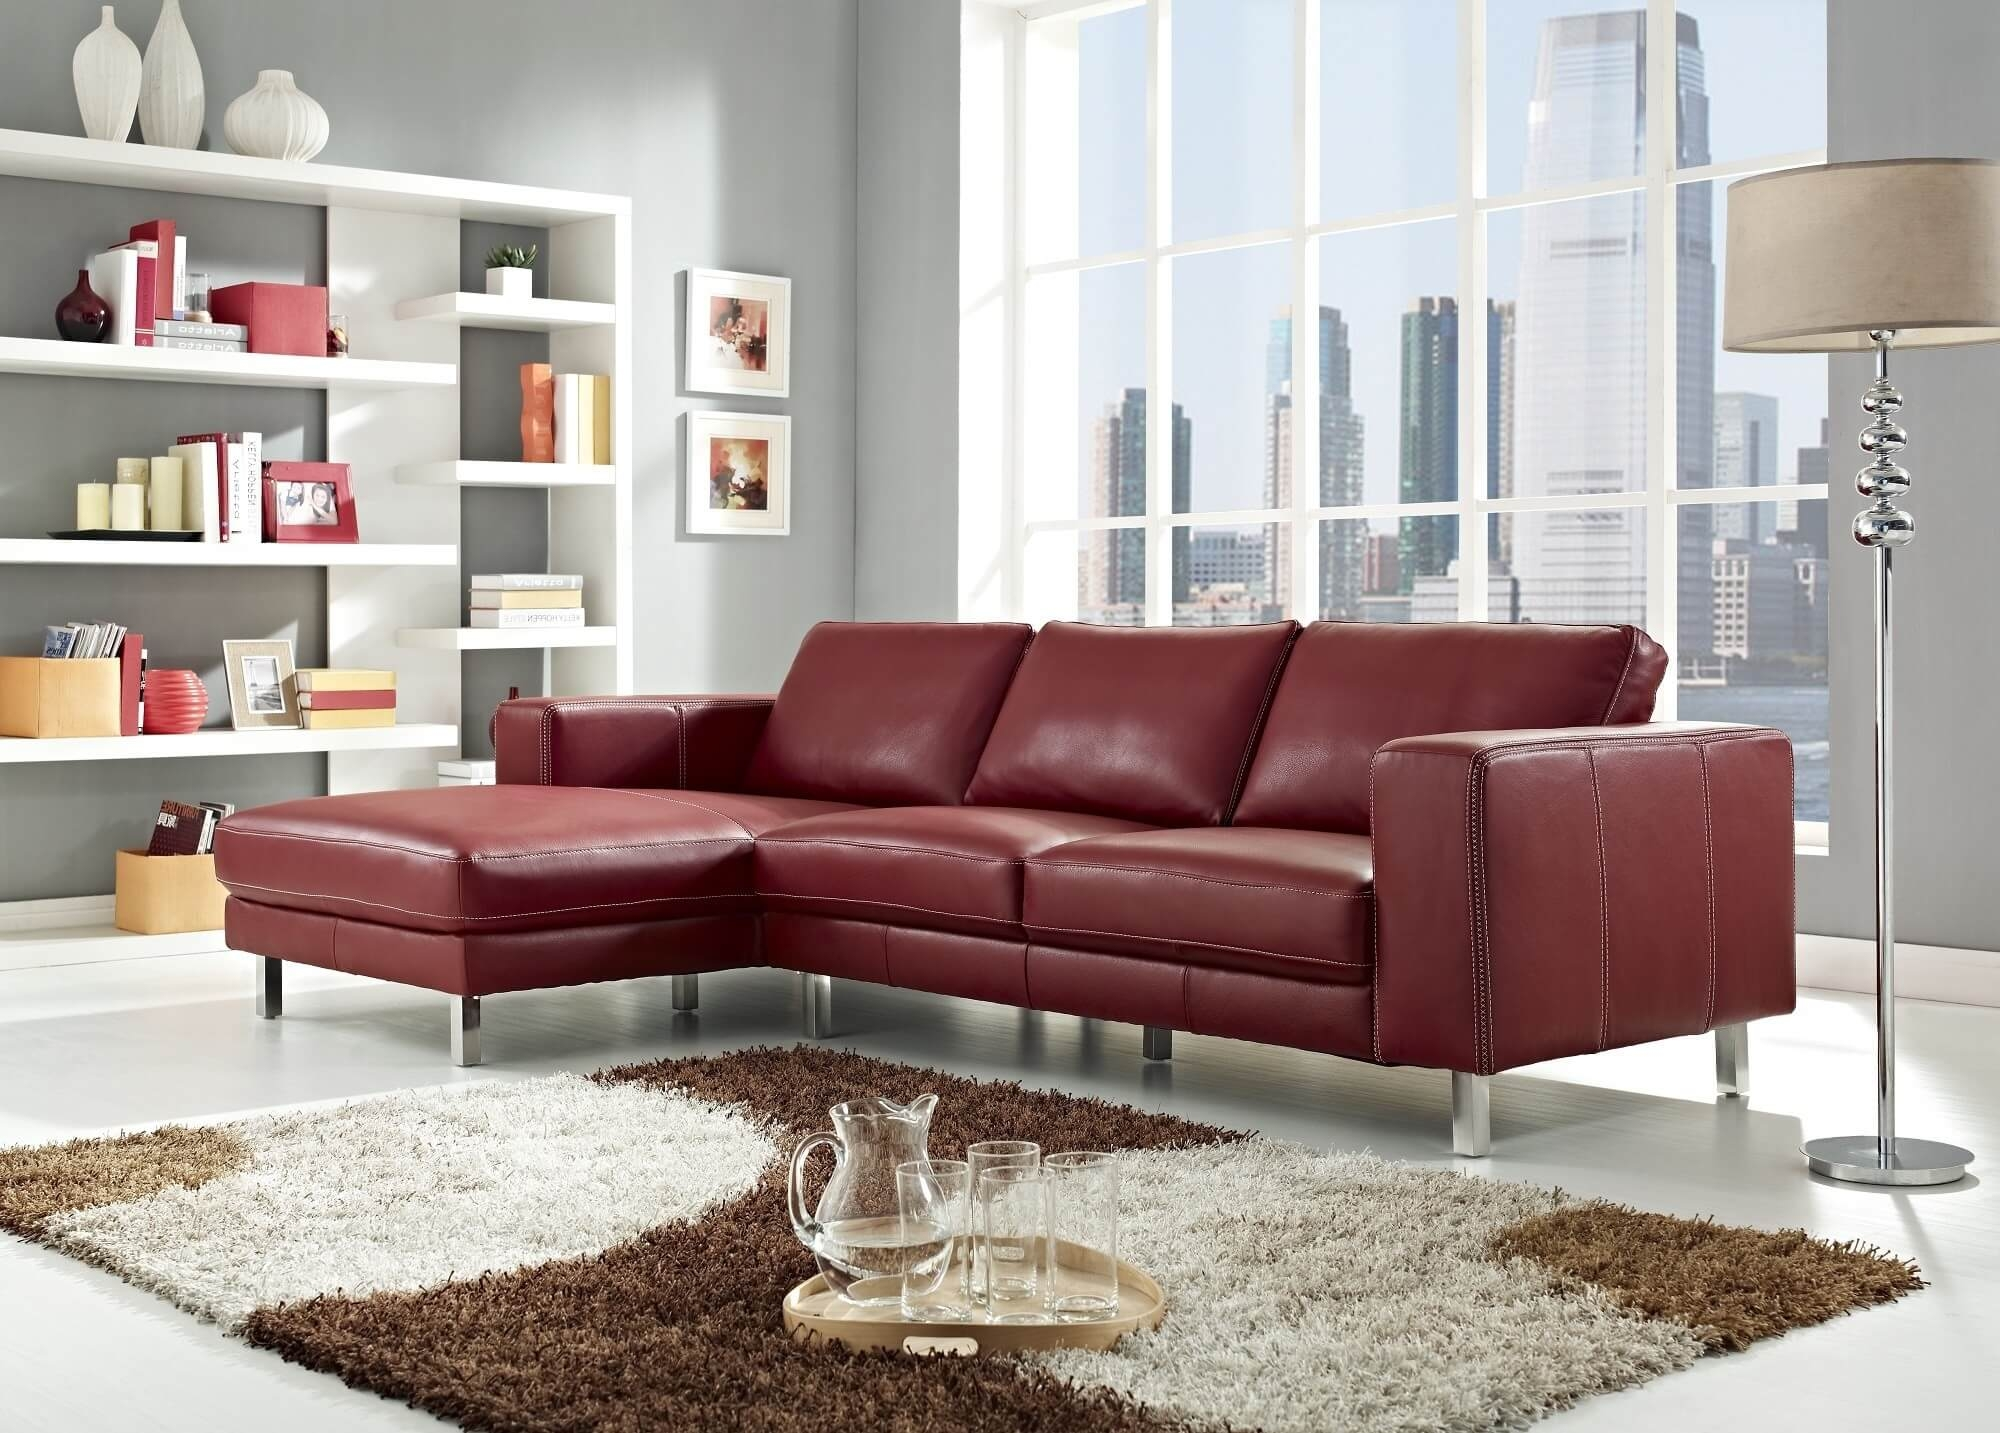 18 Stylish Modern Red Sectional Sofas Inside Extra Wide Sectional Sofas (View 12 of 15)